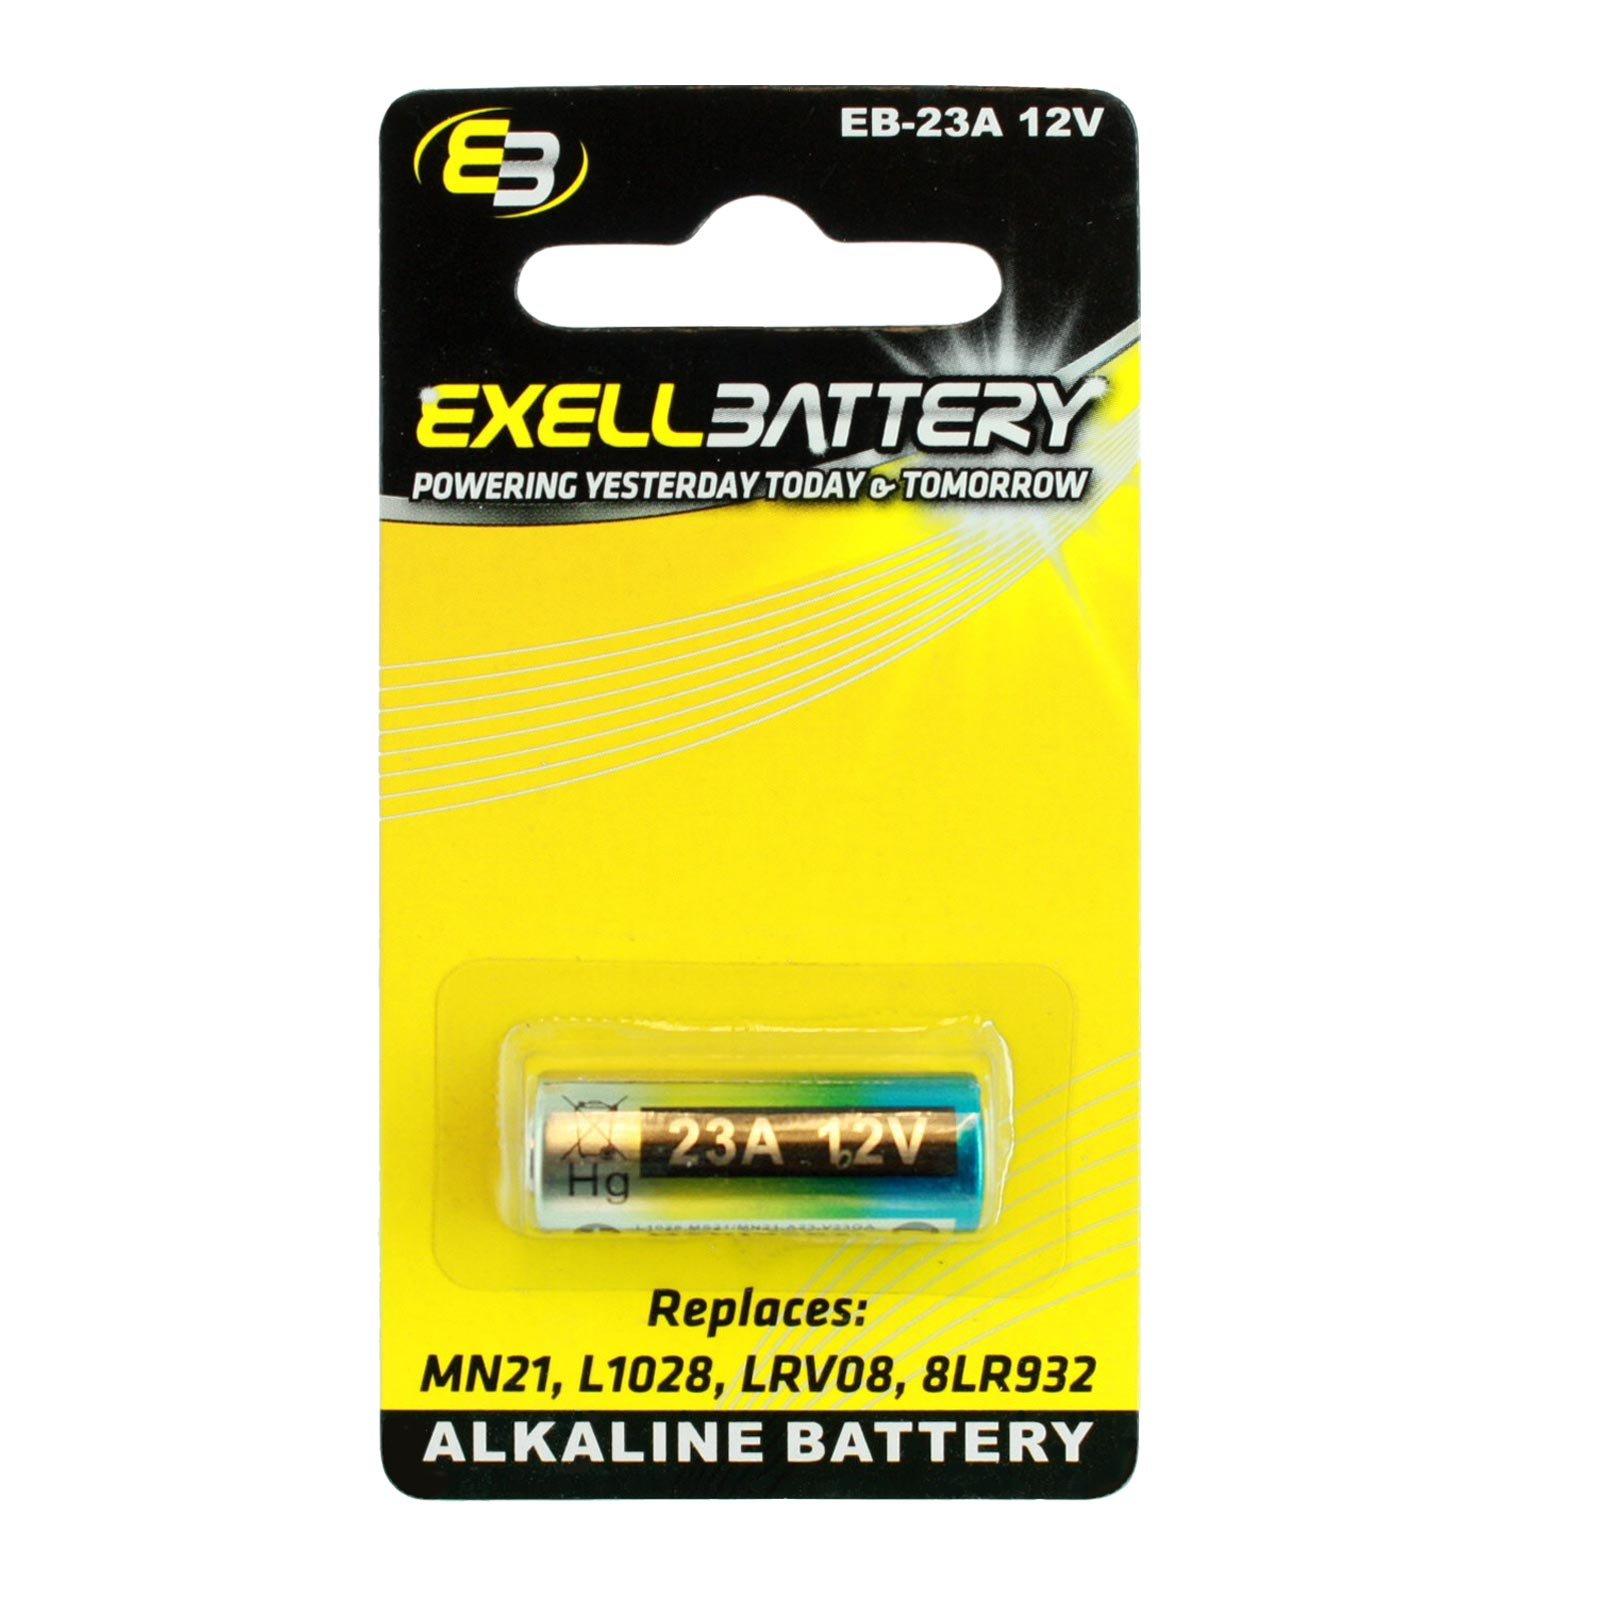 exell eb 23a alkaline 12v battery replaces mn21 l1028. Black Bedroom Furniture Sets. Home Design Ideas